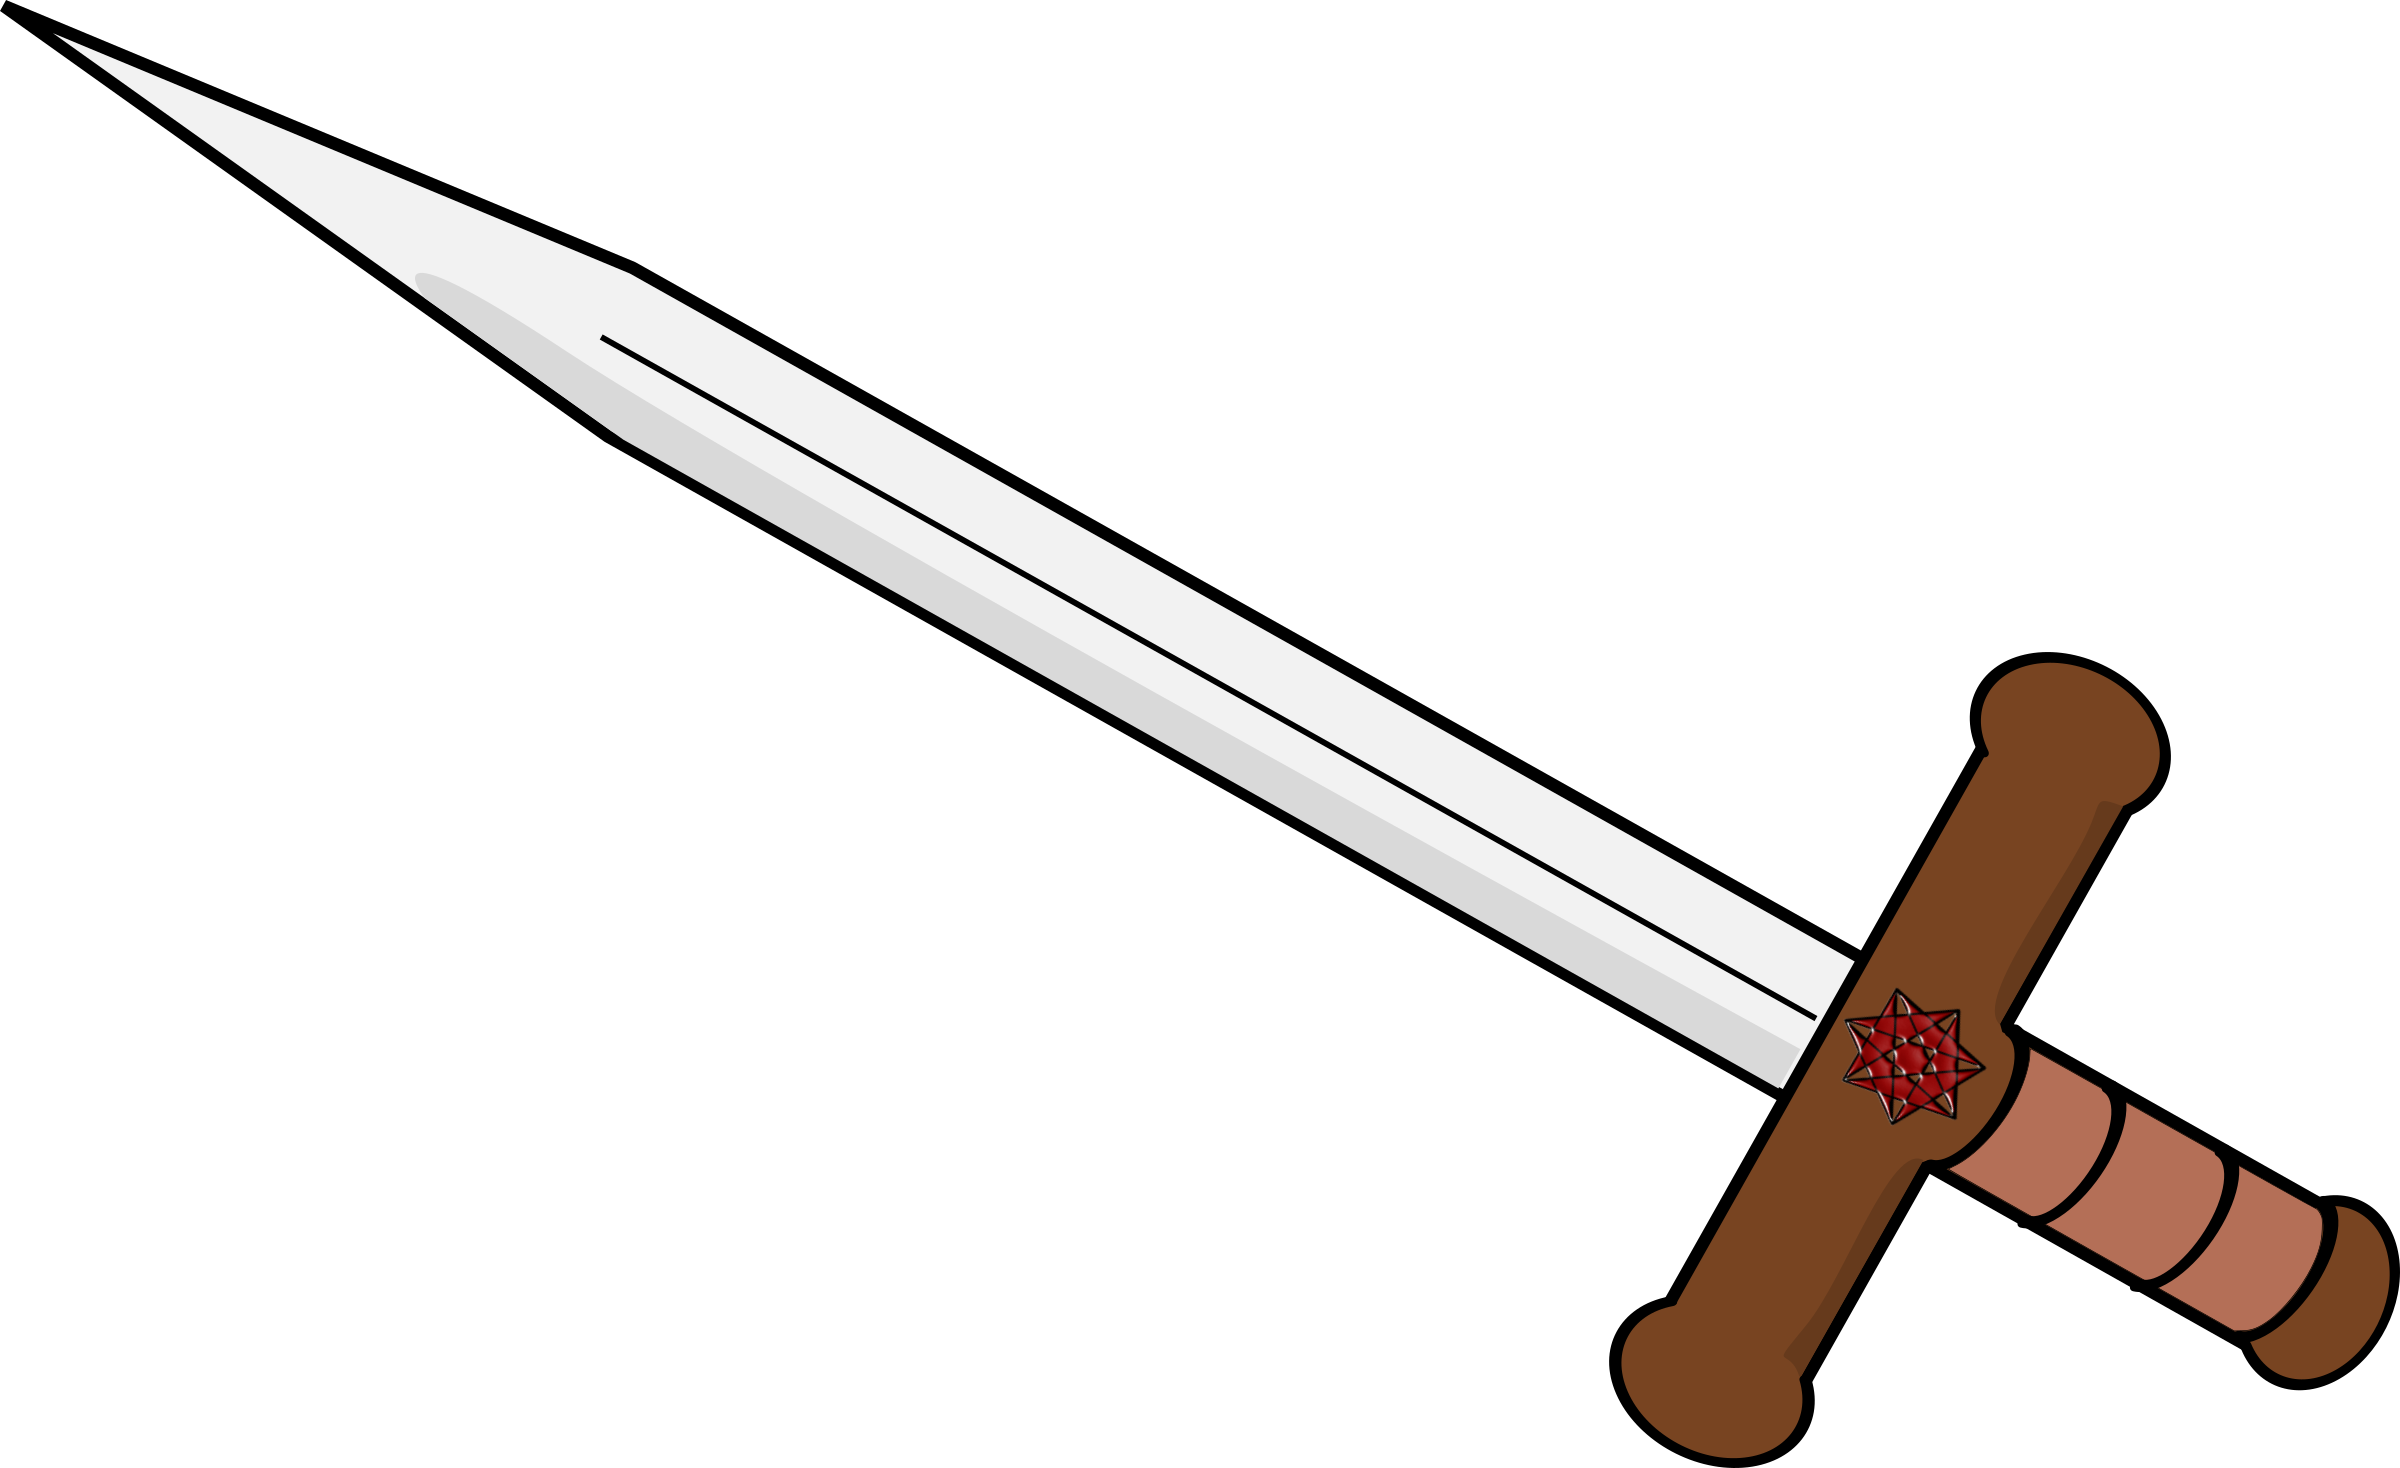 Sword clipart original. Double edged icons png